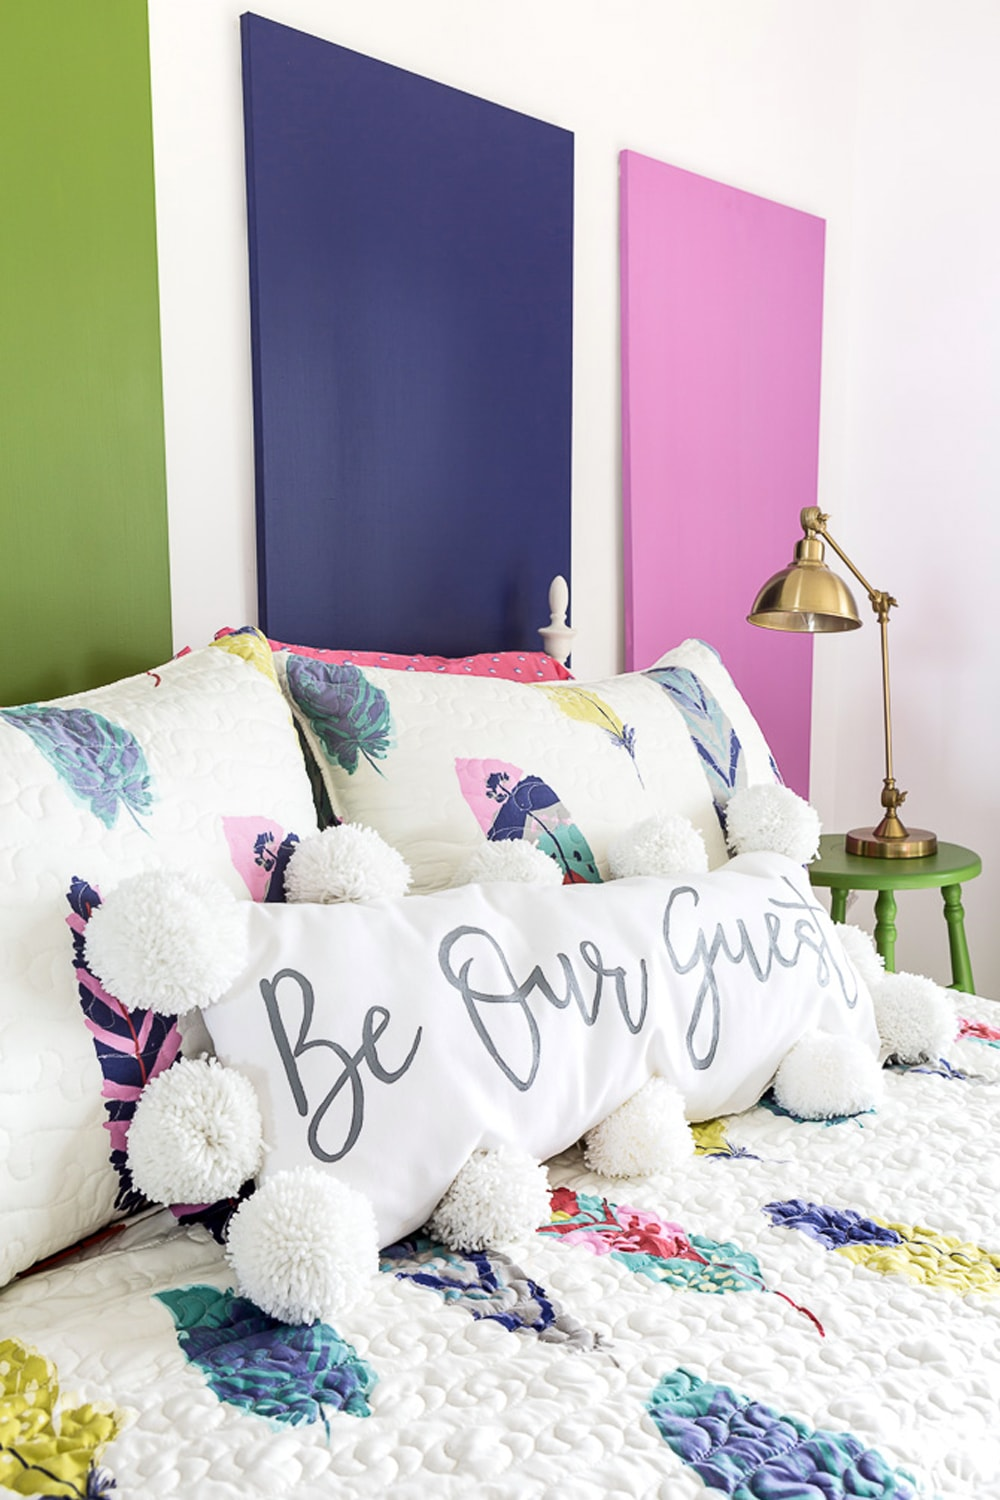 Guest-Room-Decorating-ideas-for-the-bed